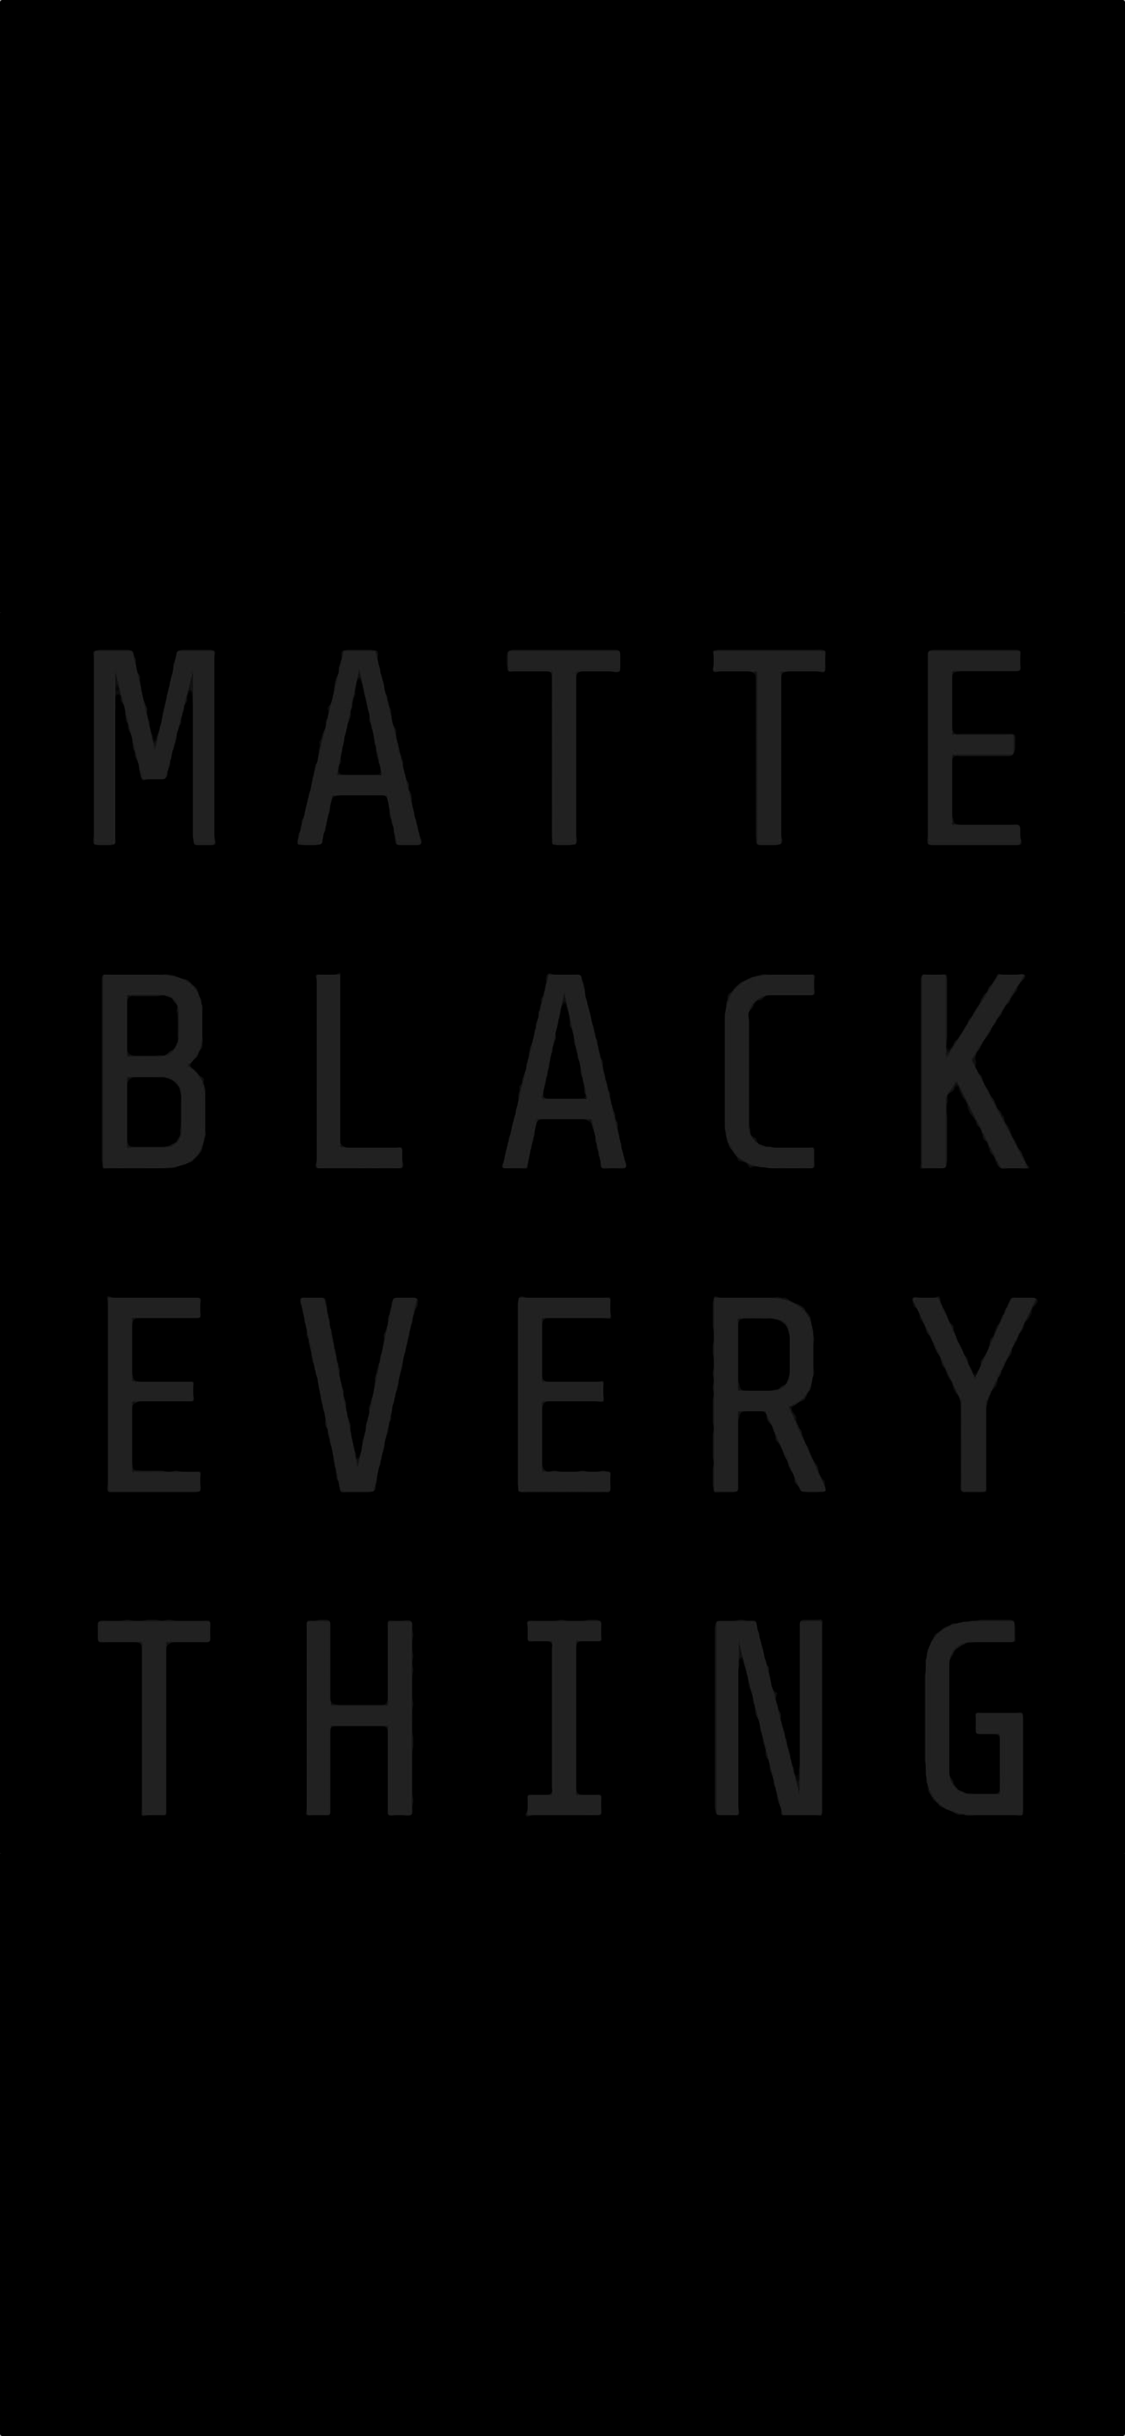 Matte Black Everything MKBHD iPhone X Wallpaper 000000